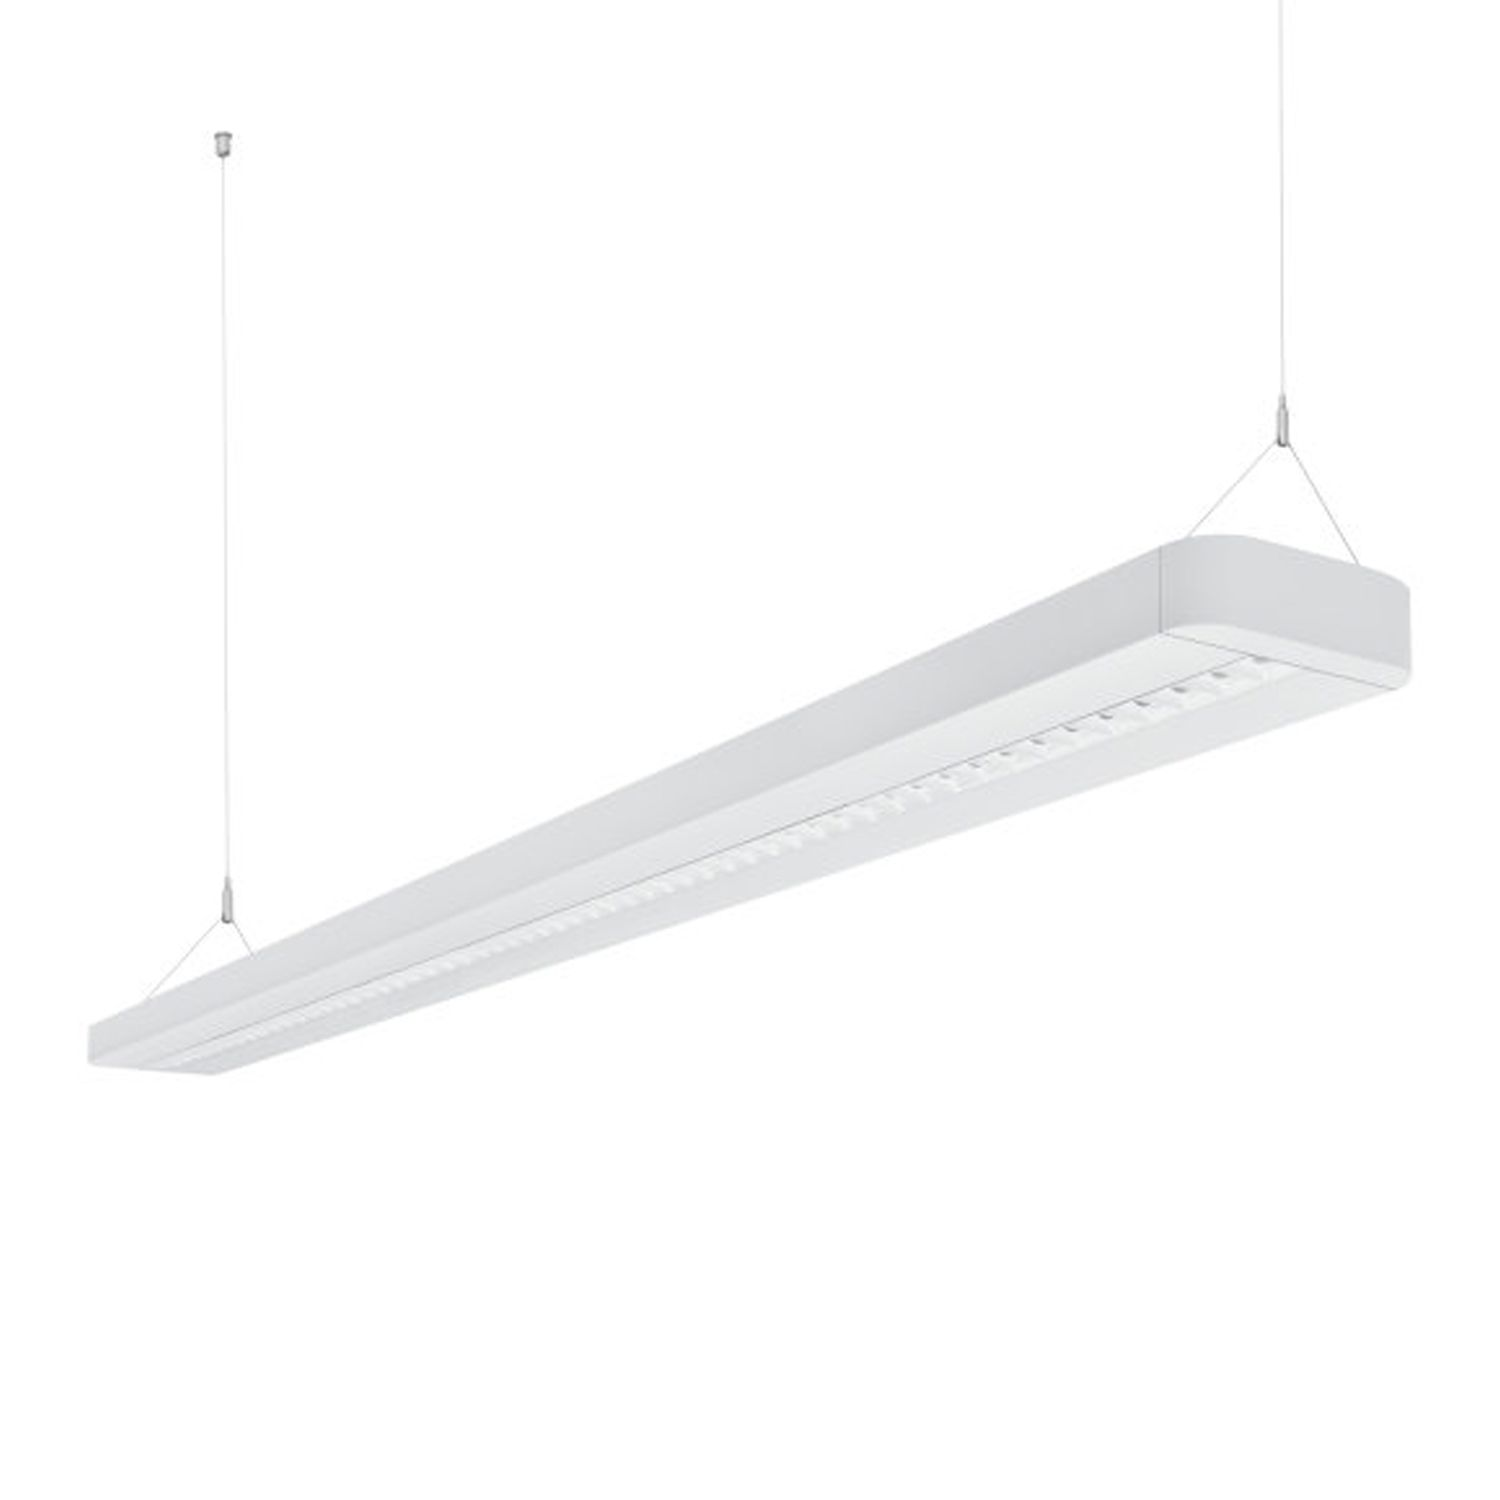 Ledvance LINEAR IndiviLED DIRECT 25W 150cm 4000K  | Cool White